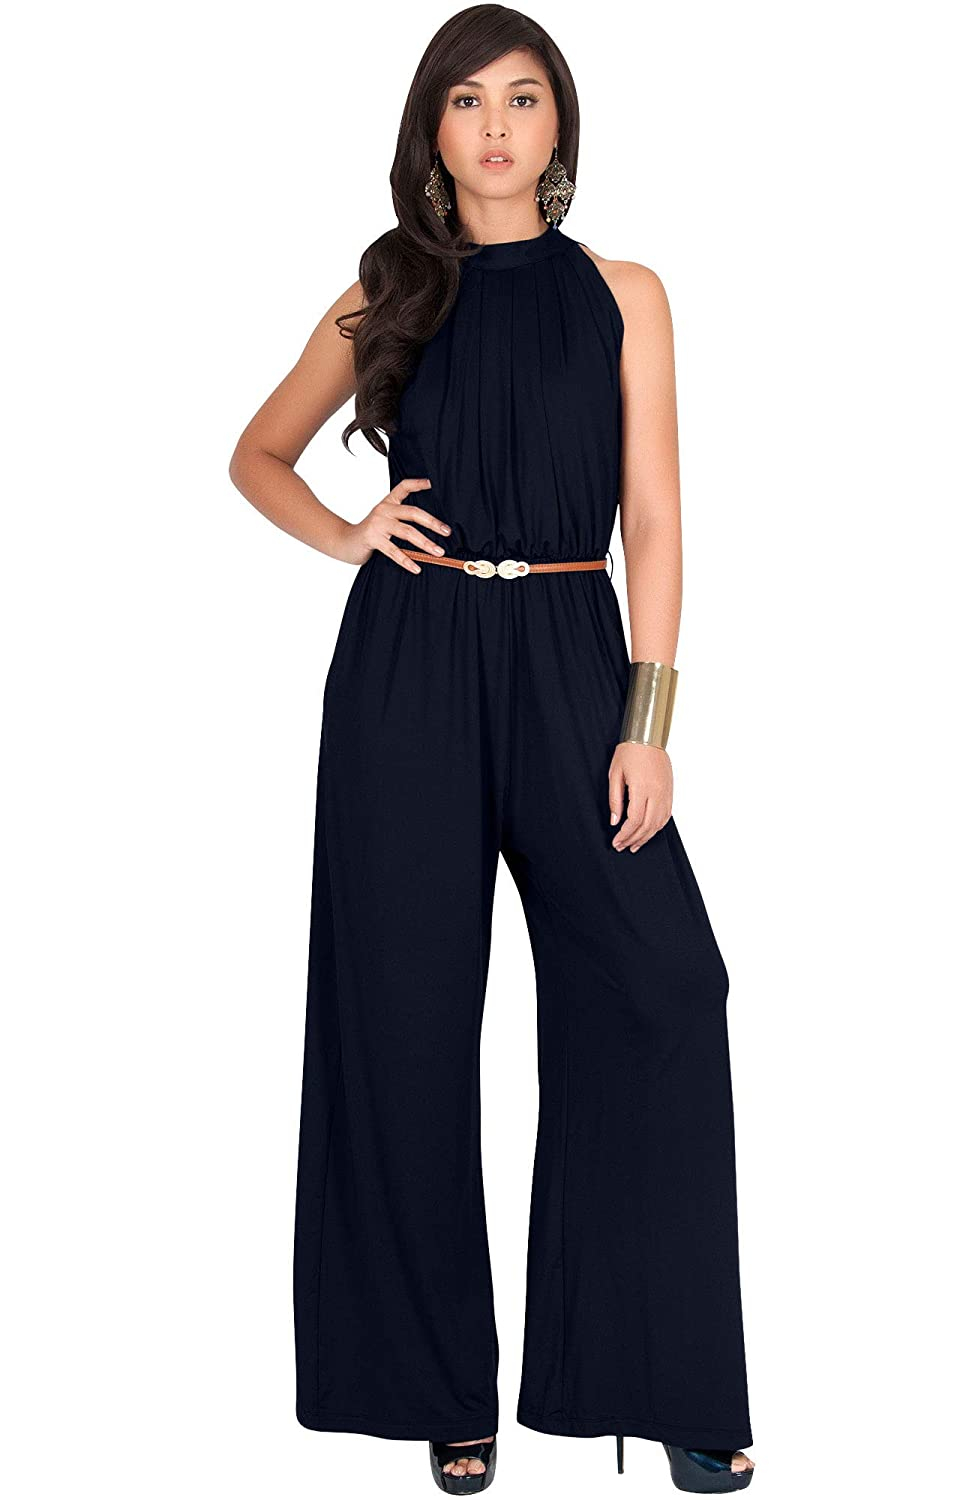 e304ba93ef5 Amazon.com  KOH KOH Womens Sexy Sleeveless Wide Leg Pants Cocktail Pantsuit  Jumpsuit Romper  Clothing